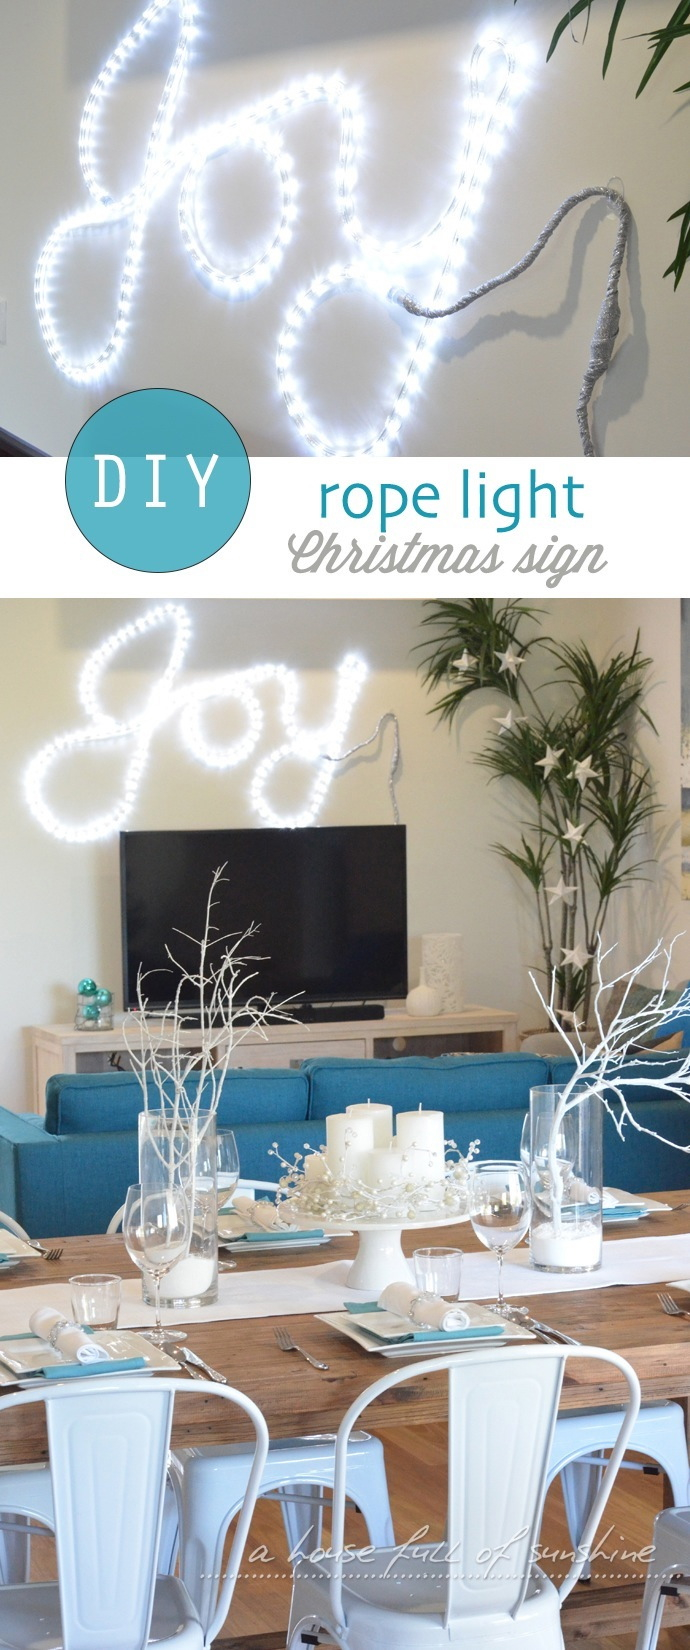 JOY-light-pin2 Christmas Rope Lighting Ideas on christmas pendants, christmas lights, christmas landscape lighting, christmas signs, christmas rope trees, christmas stage lighting, christmas led, christmas tree lighting, christmas rope decorations, christmas outdoor lighting, christmas patio lighting,